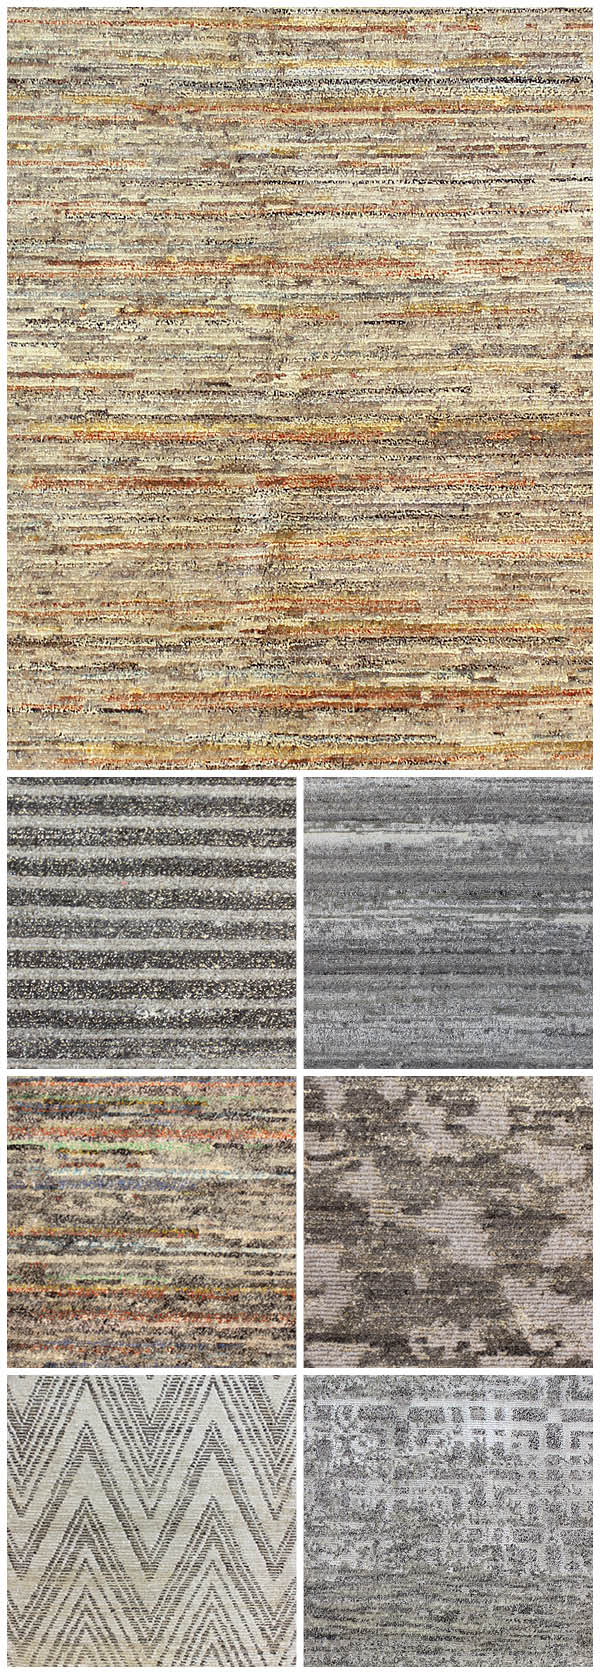 Contemporary Rug of the Month: April